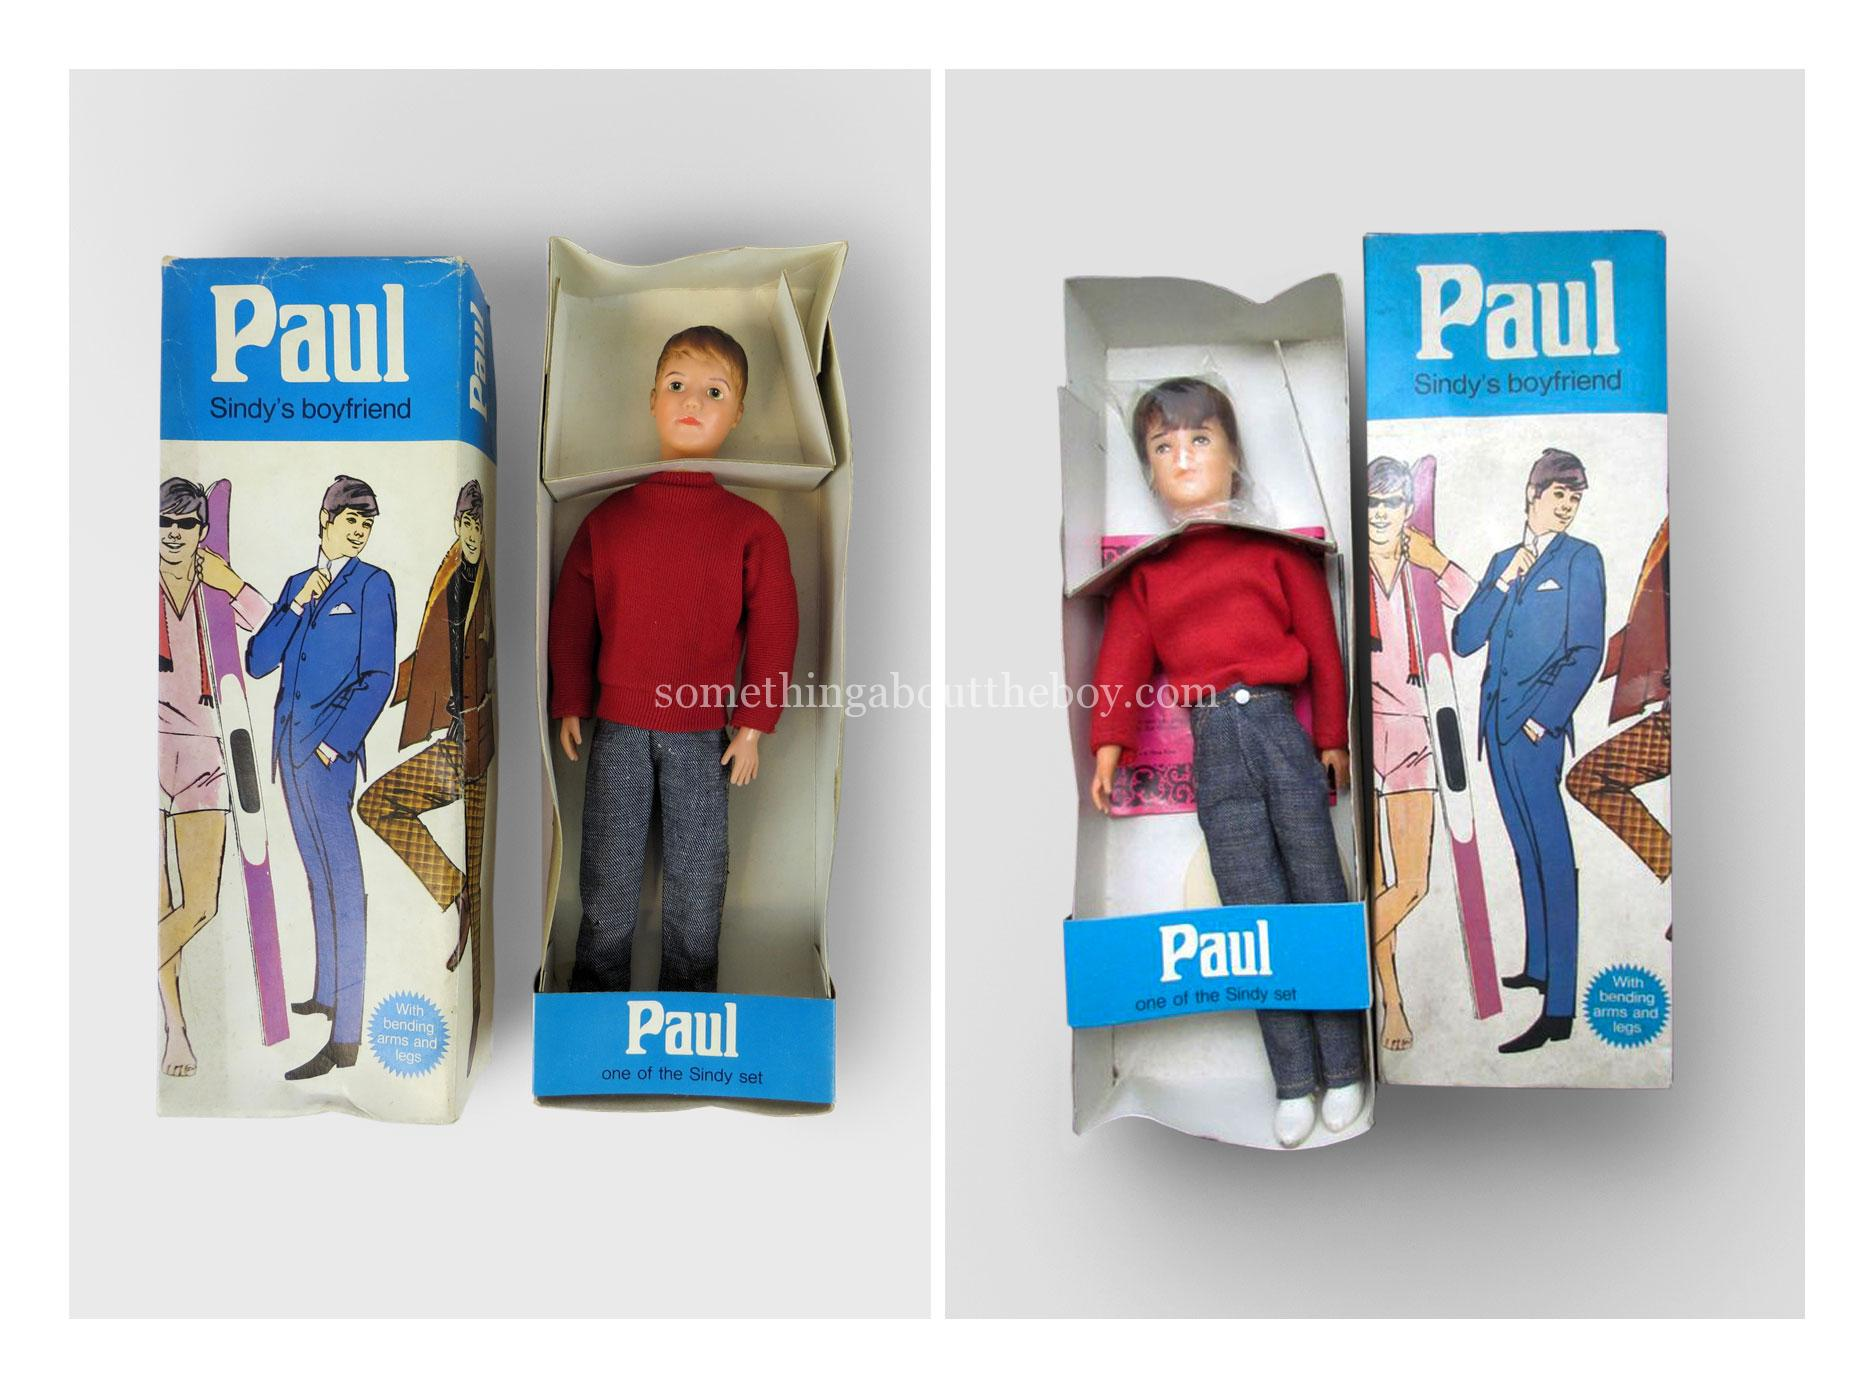 1965-7 Paul by Pedigree UK